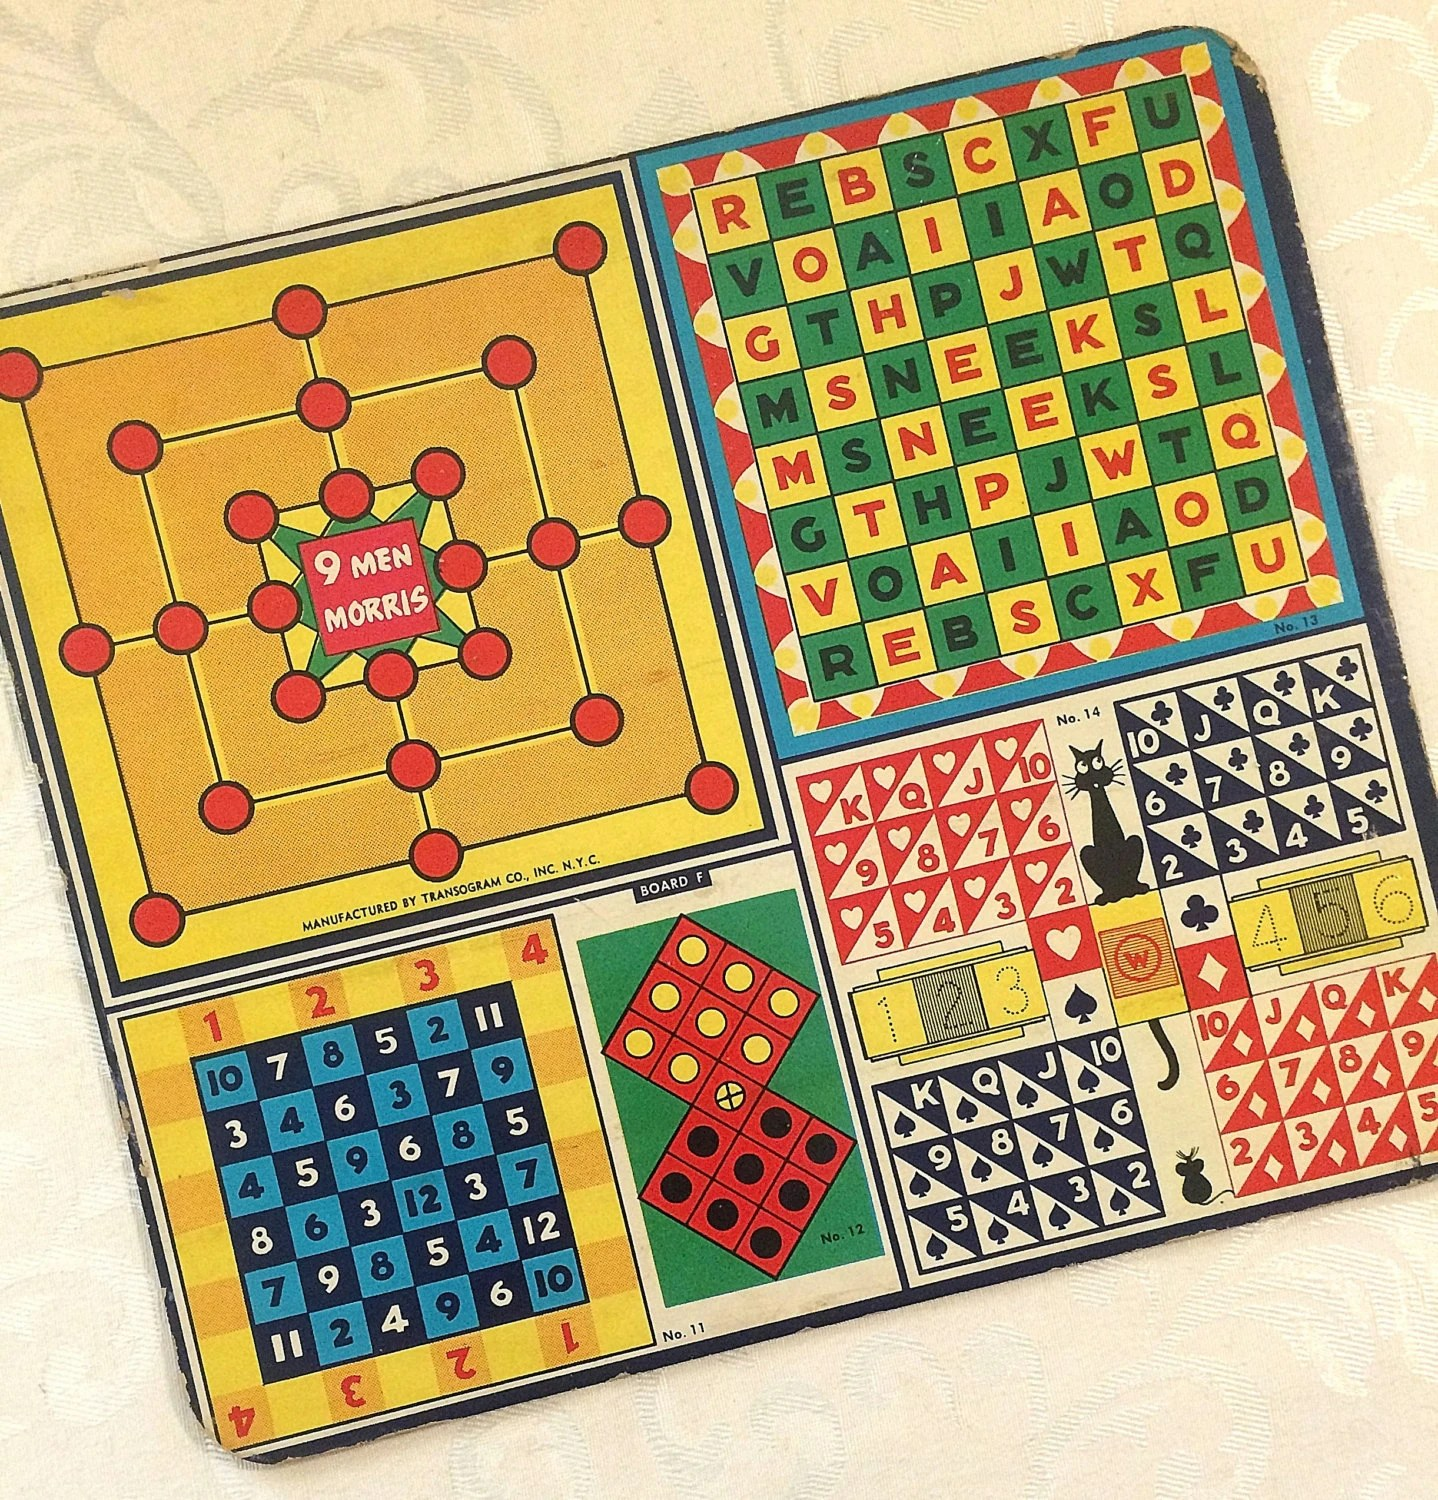 Decorative Game Boards Decorative Vintage Small Game Board Colorful Graphics 1940s